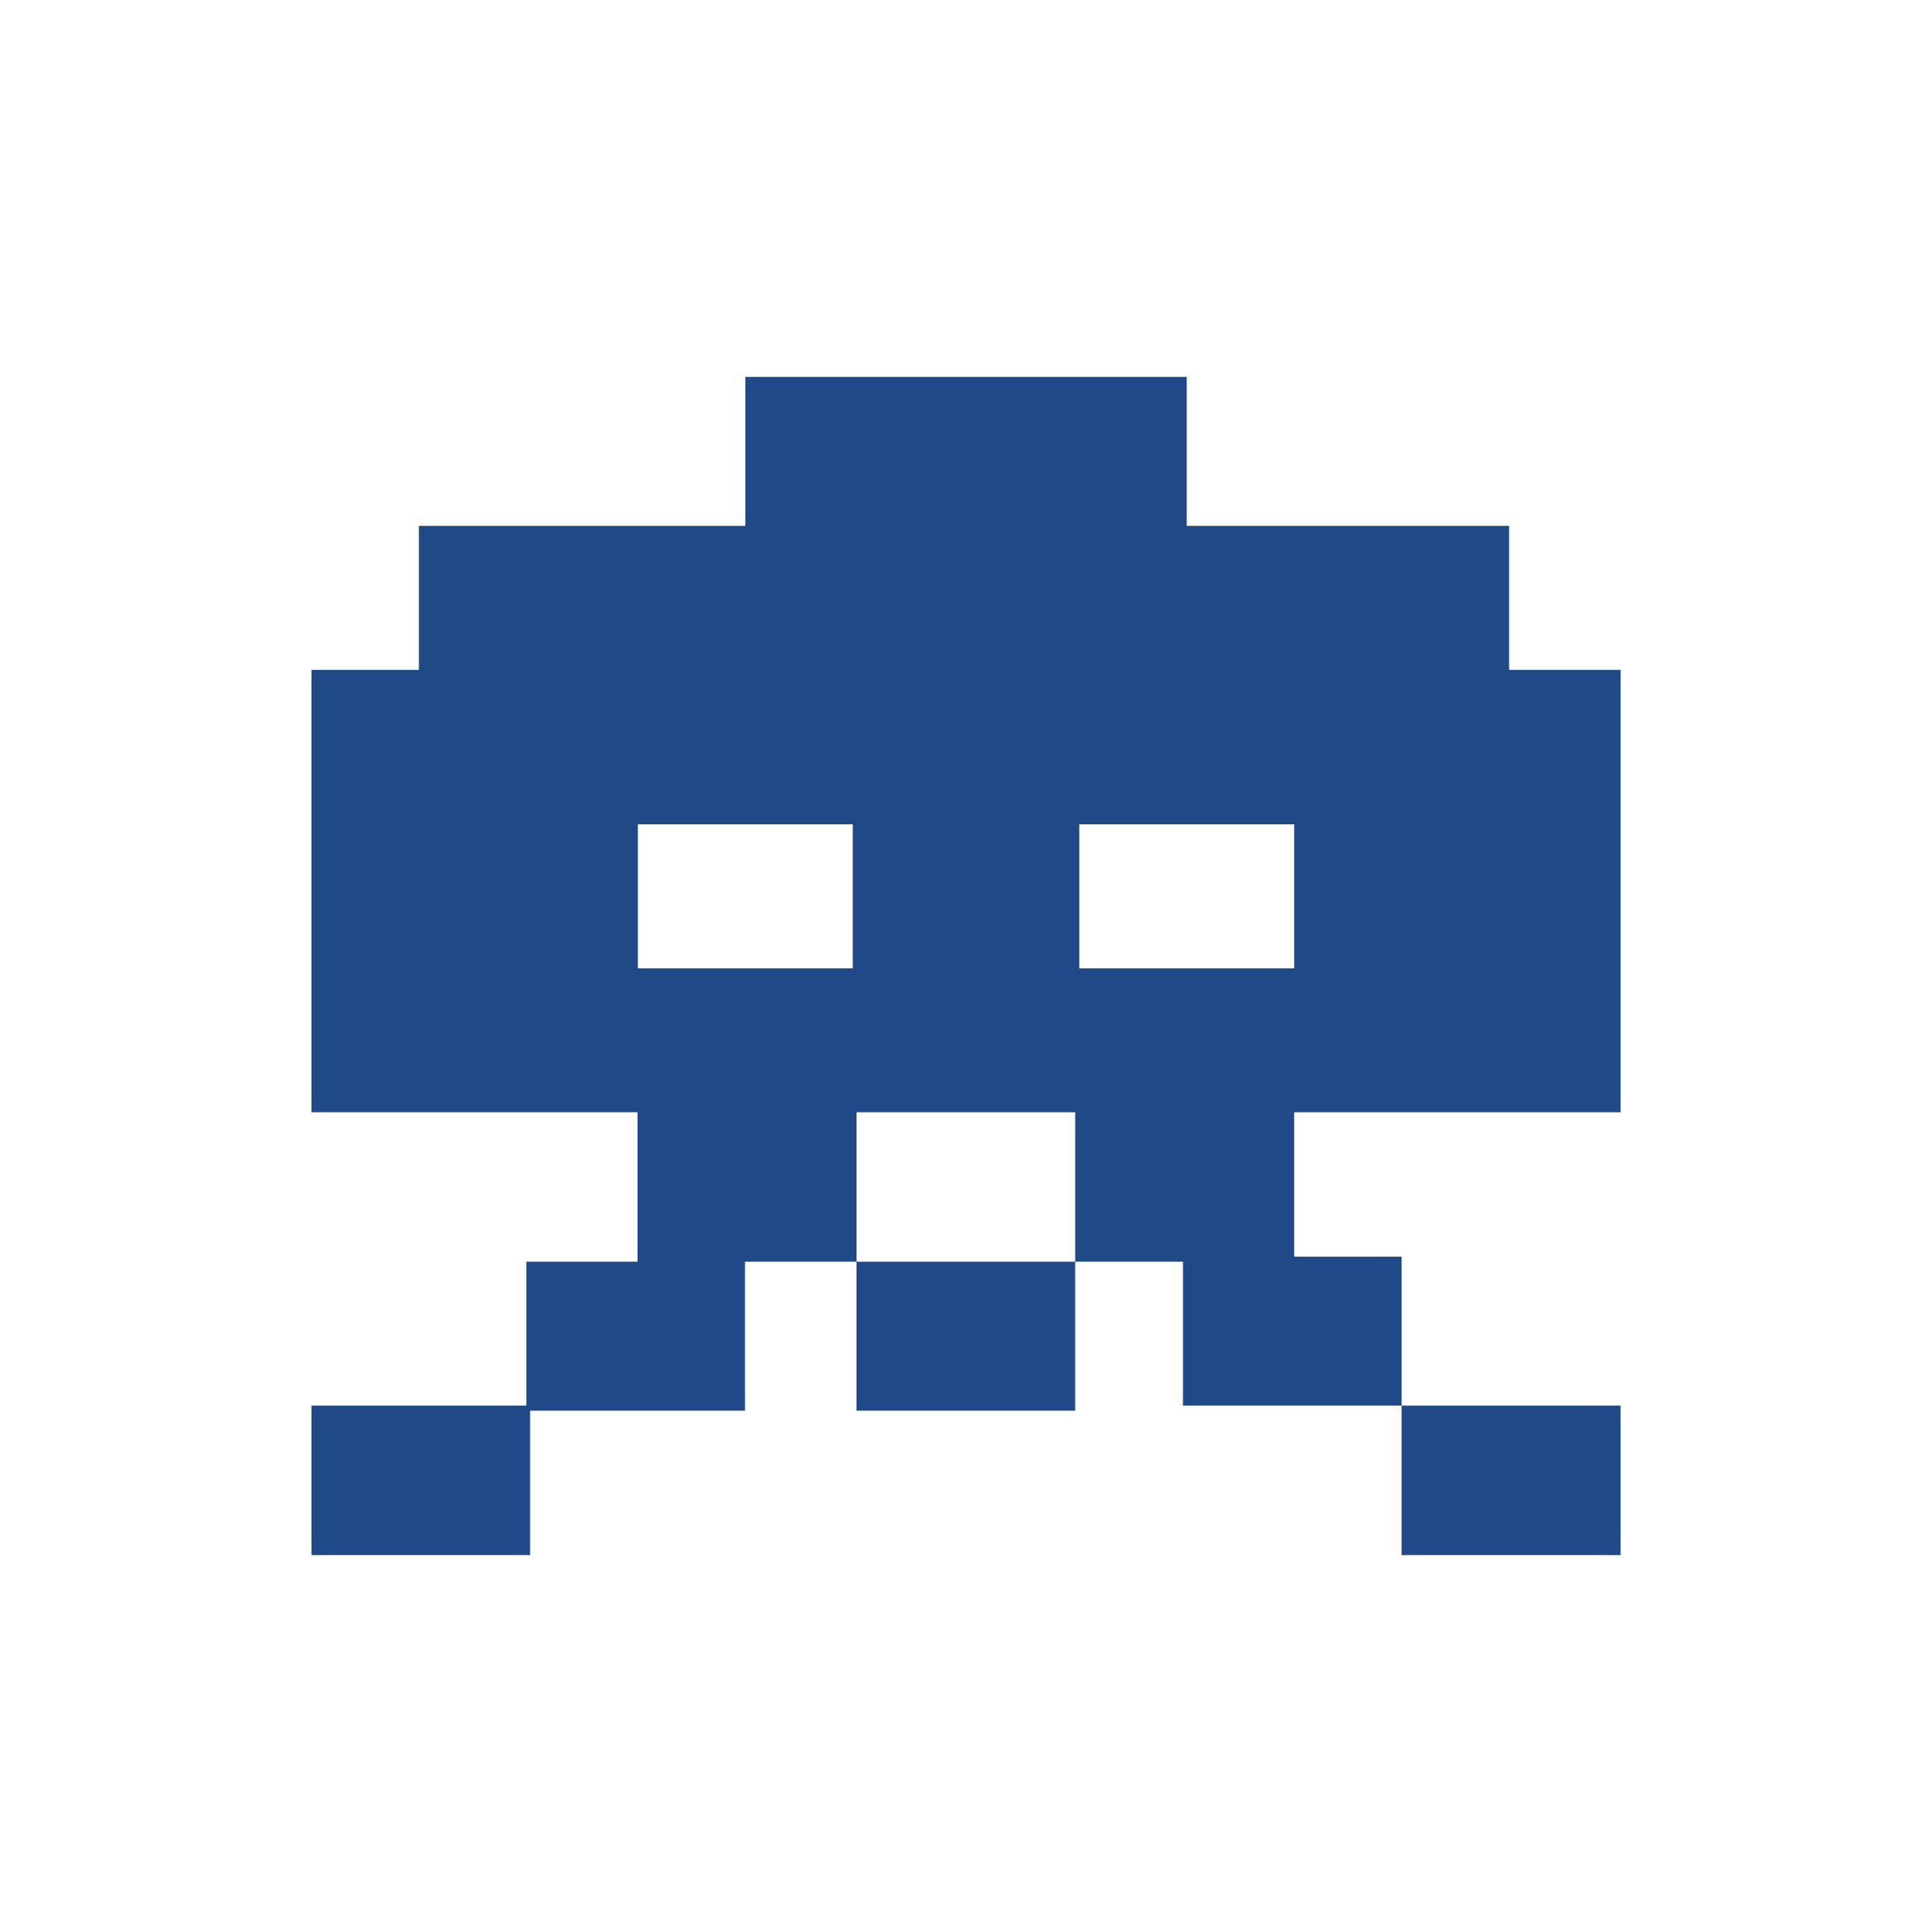 space invaders by fzap